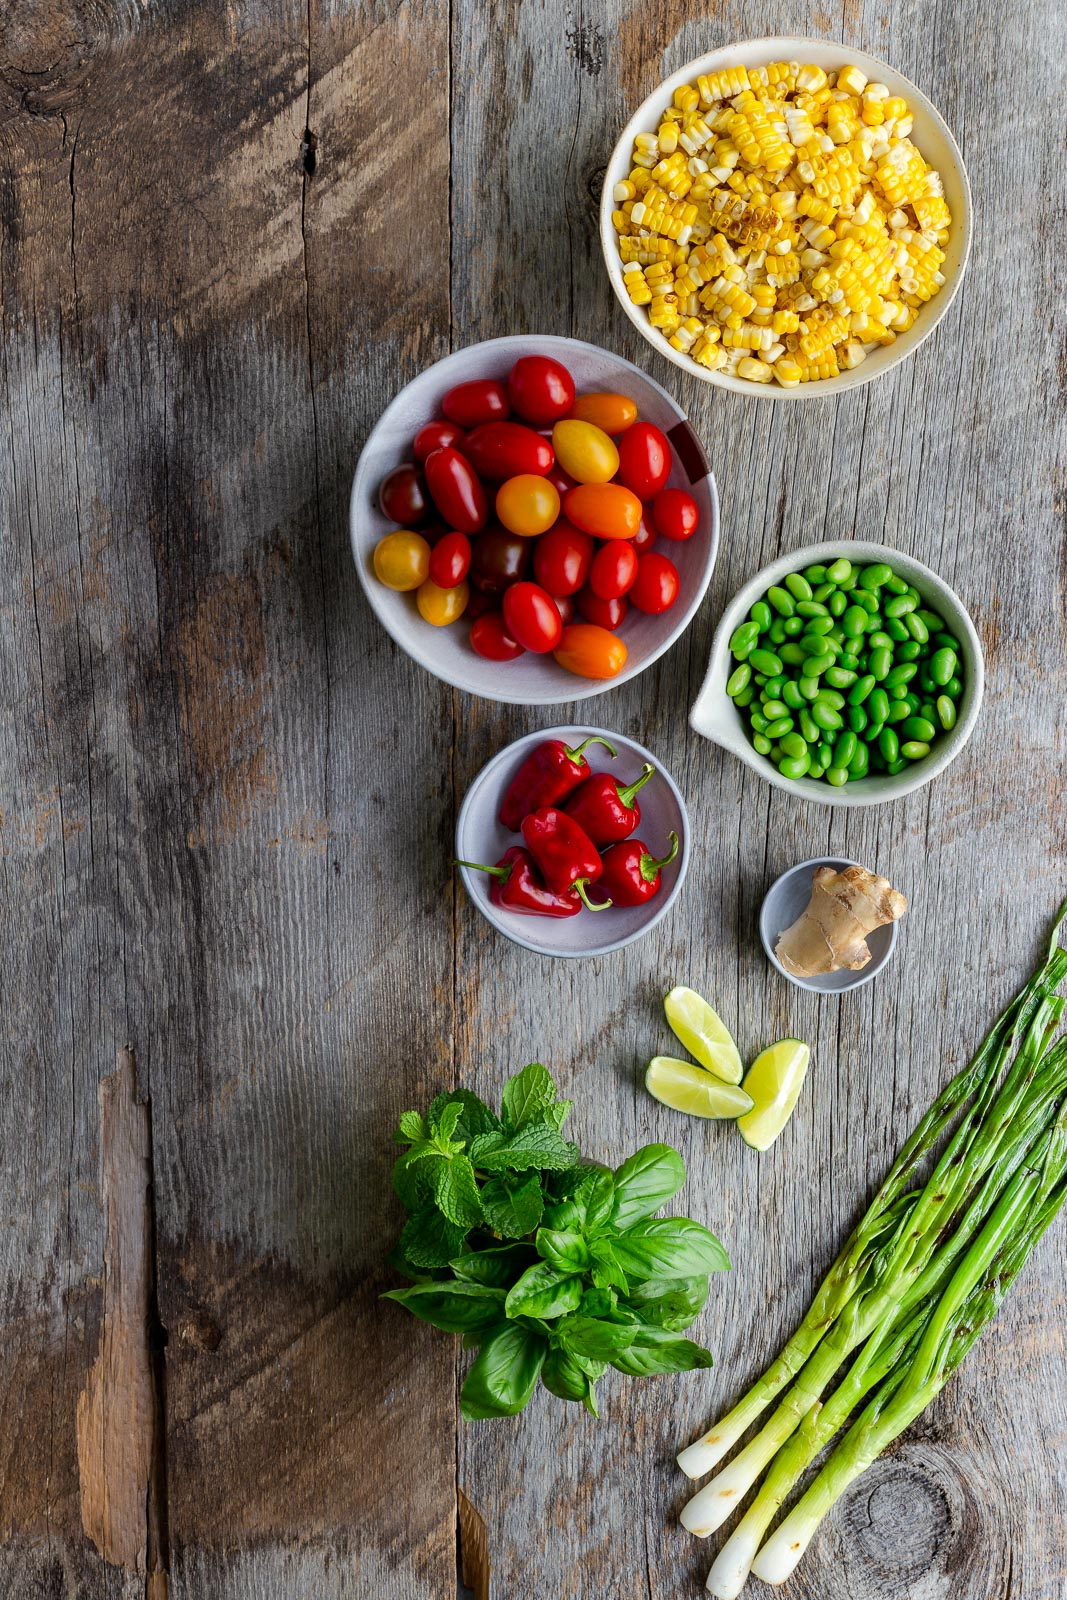 Ingredients for making corn salad on a wooden tabletop.